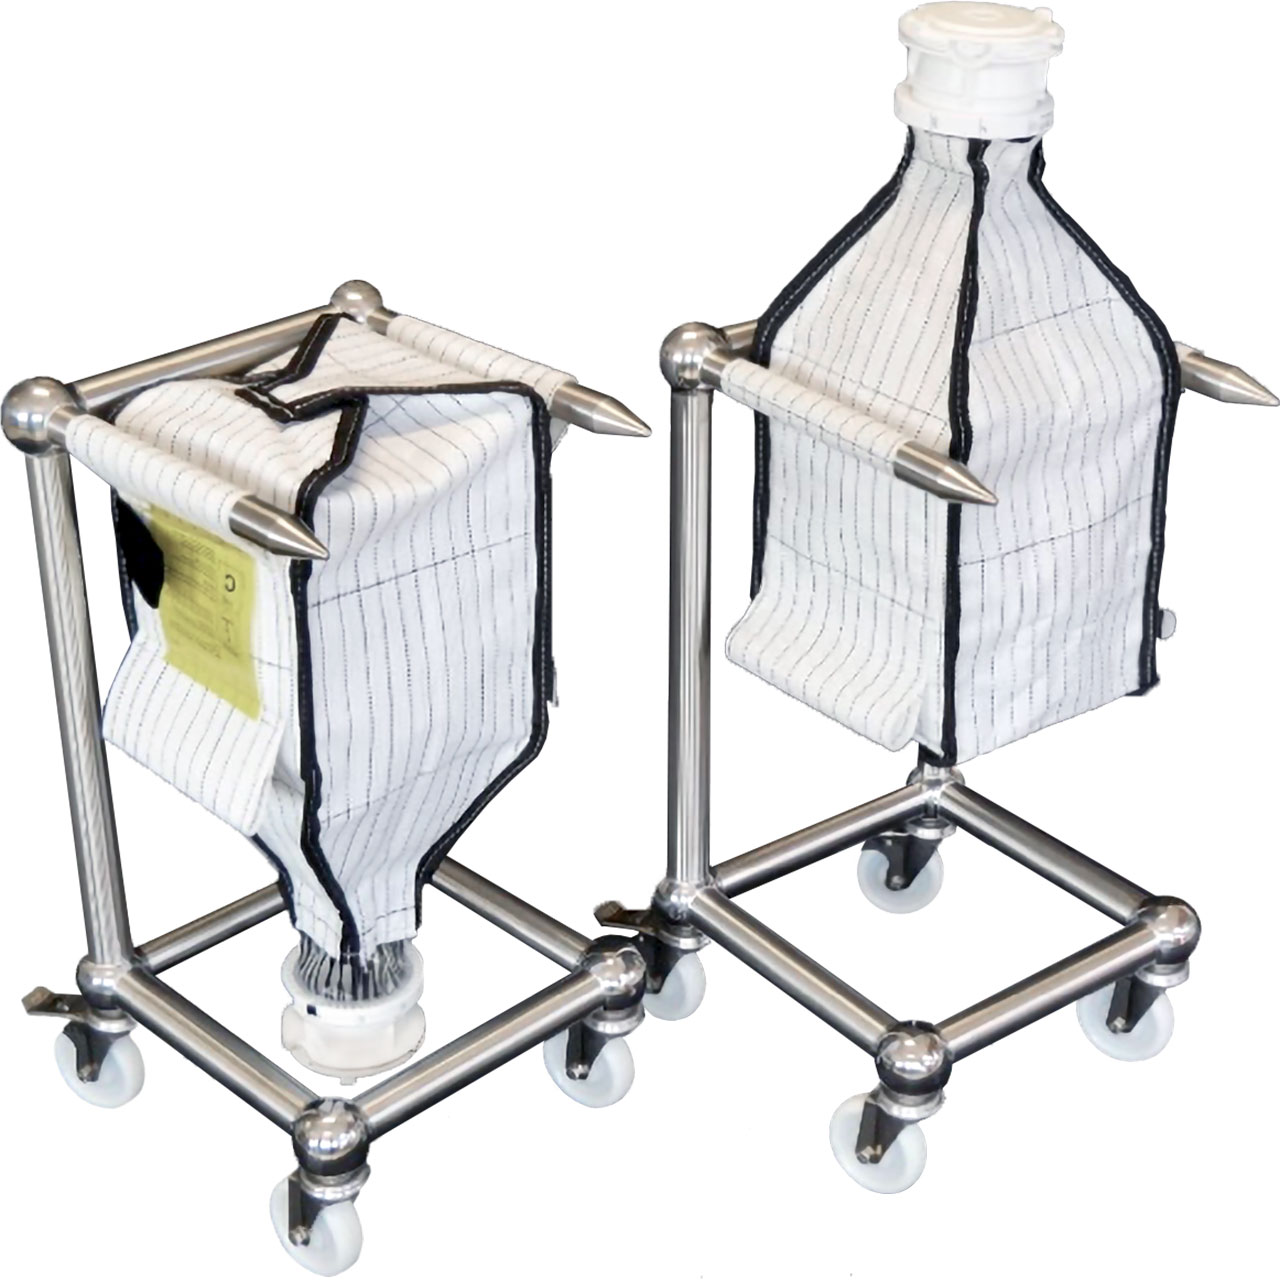 Adjustable FIBC Trolley for Single-use Containment Systems